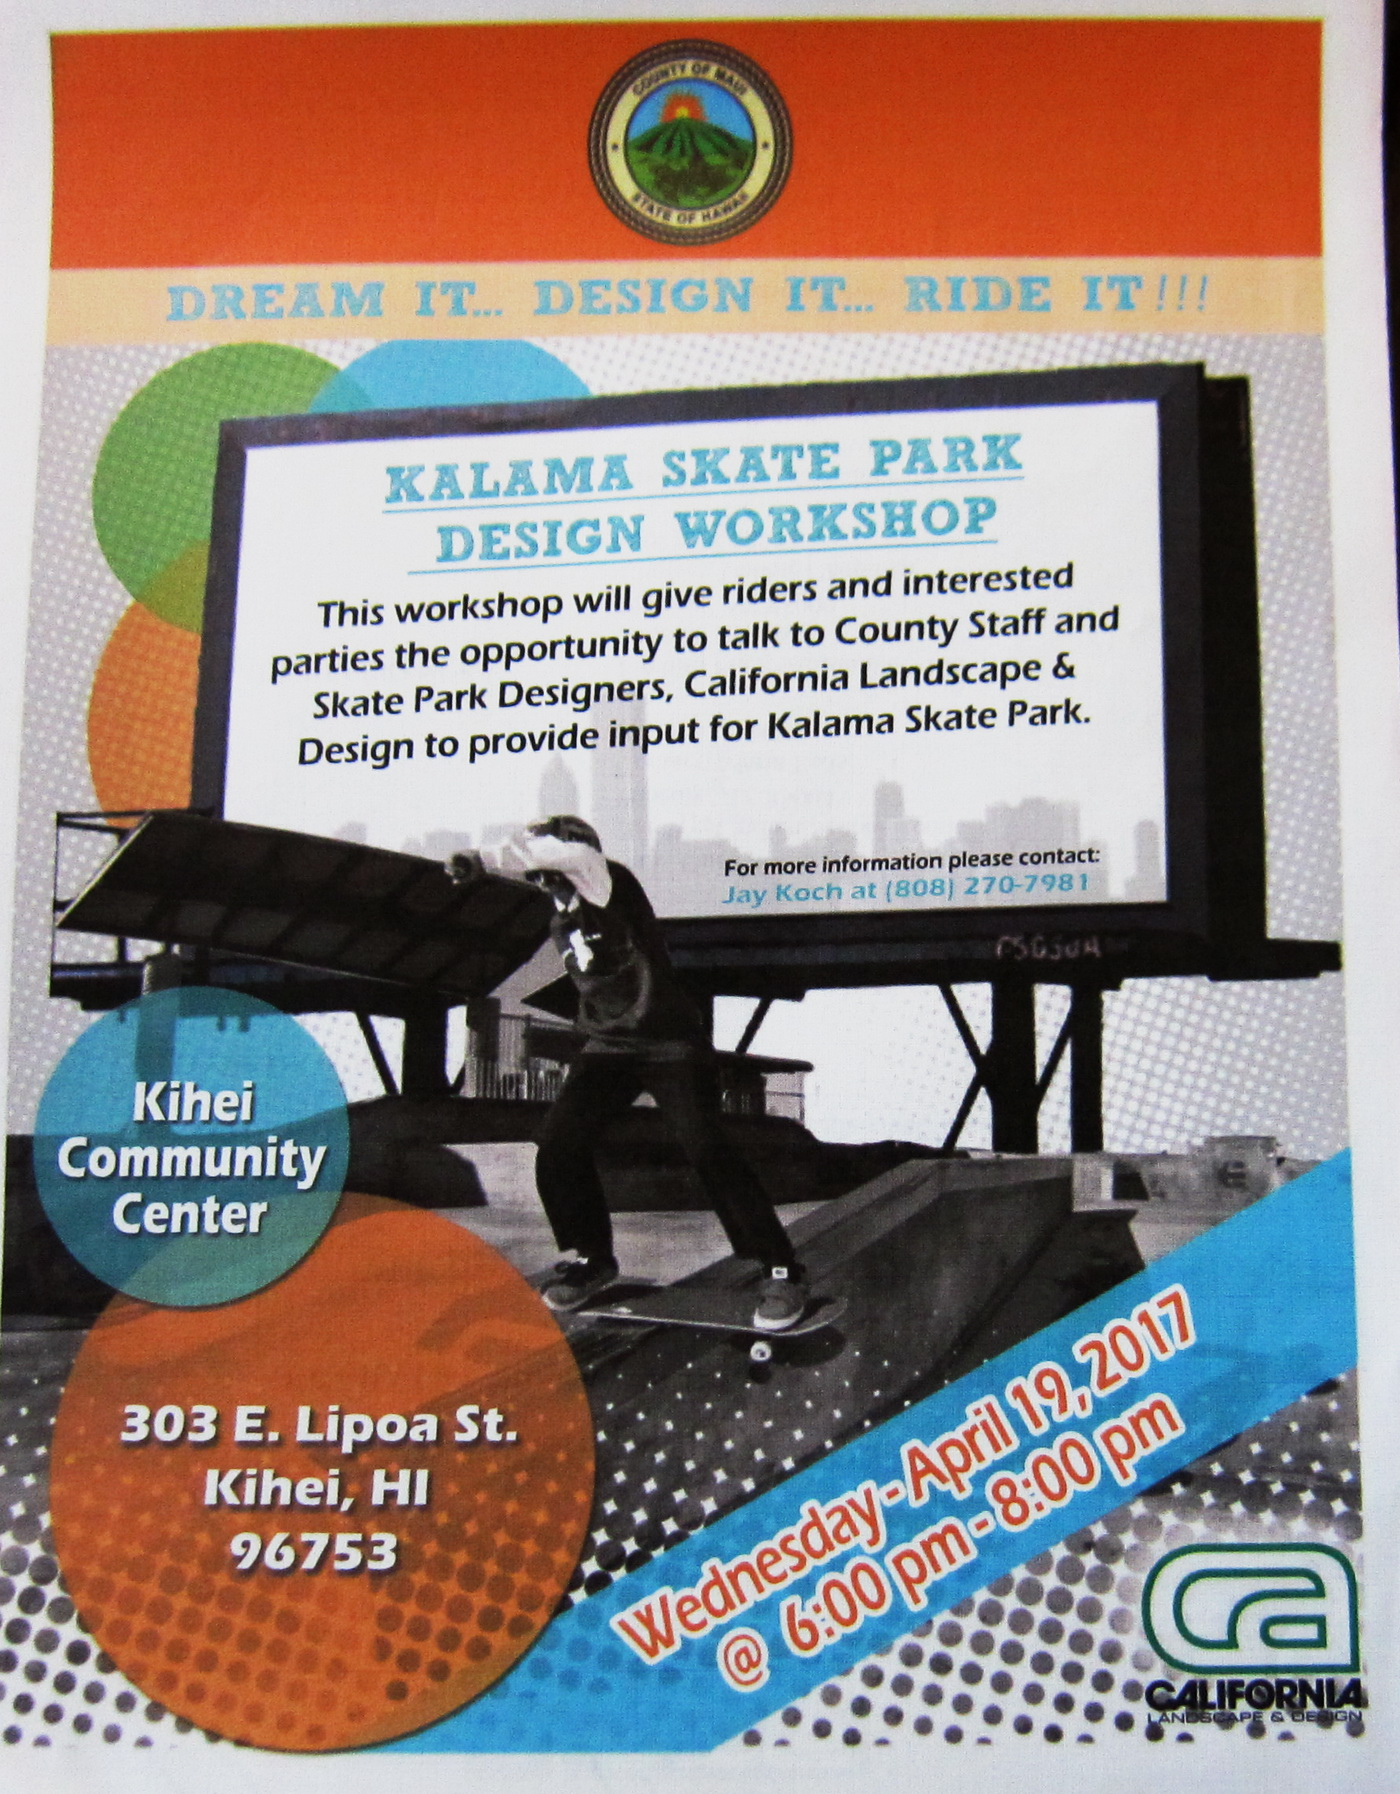 Public Invited to Kalama Skate Park Design Workshop this Wednesday at KCC